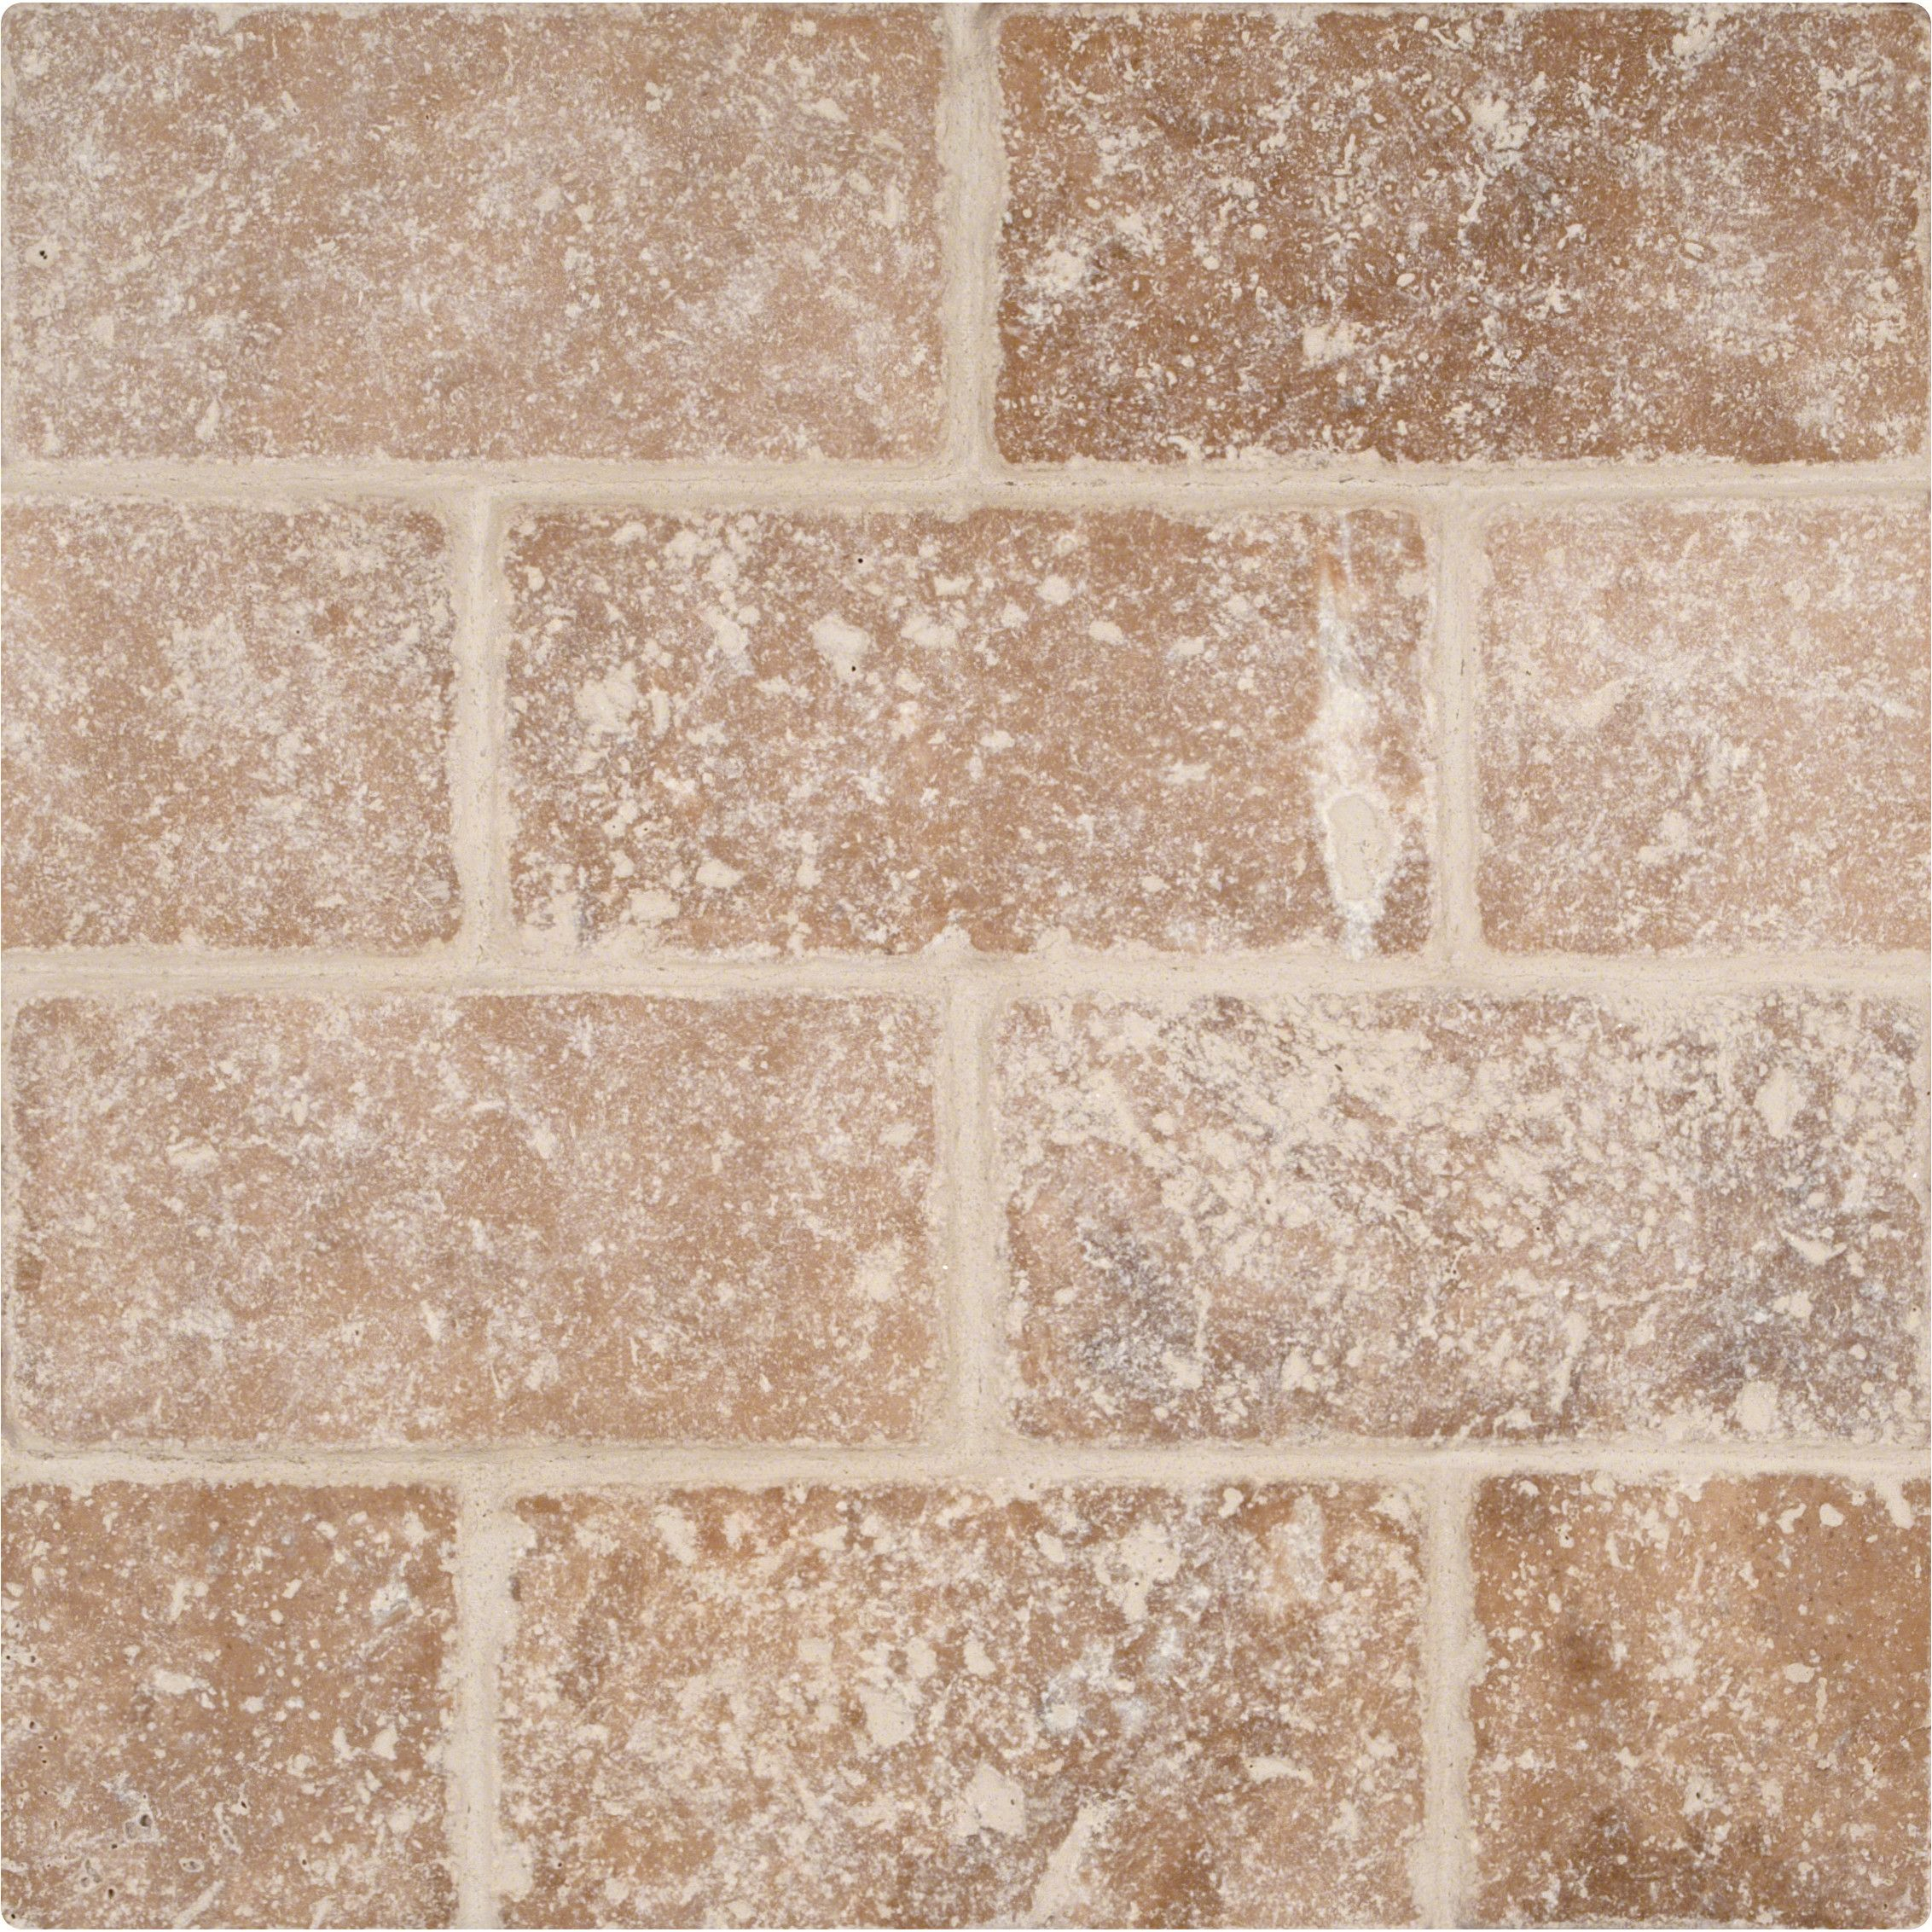 Ms international tuscany walnut 3 x 6 travertine subway tile in dailygadgetfo Image collections